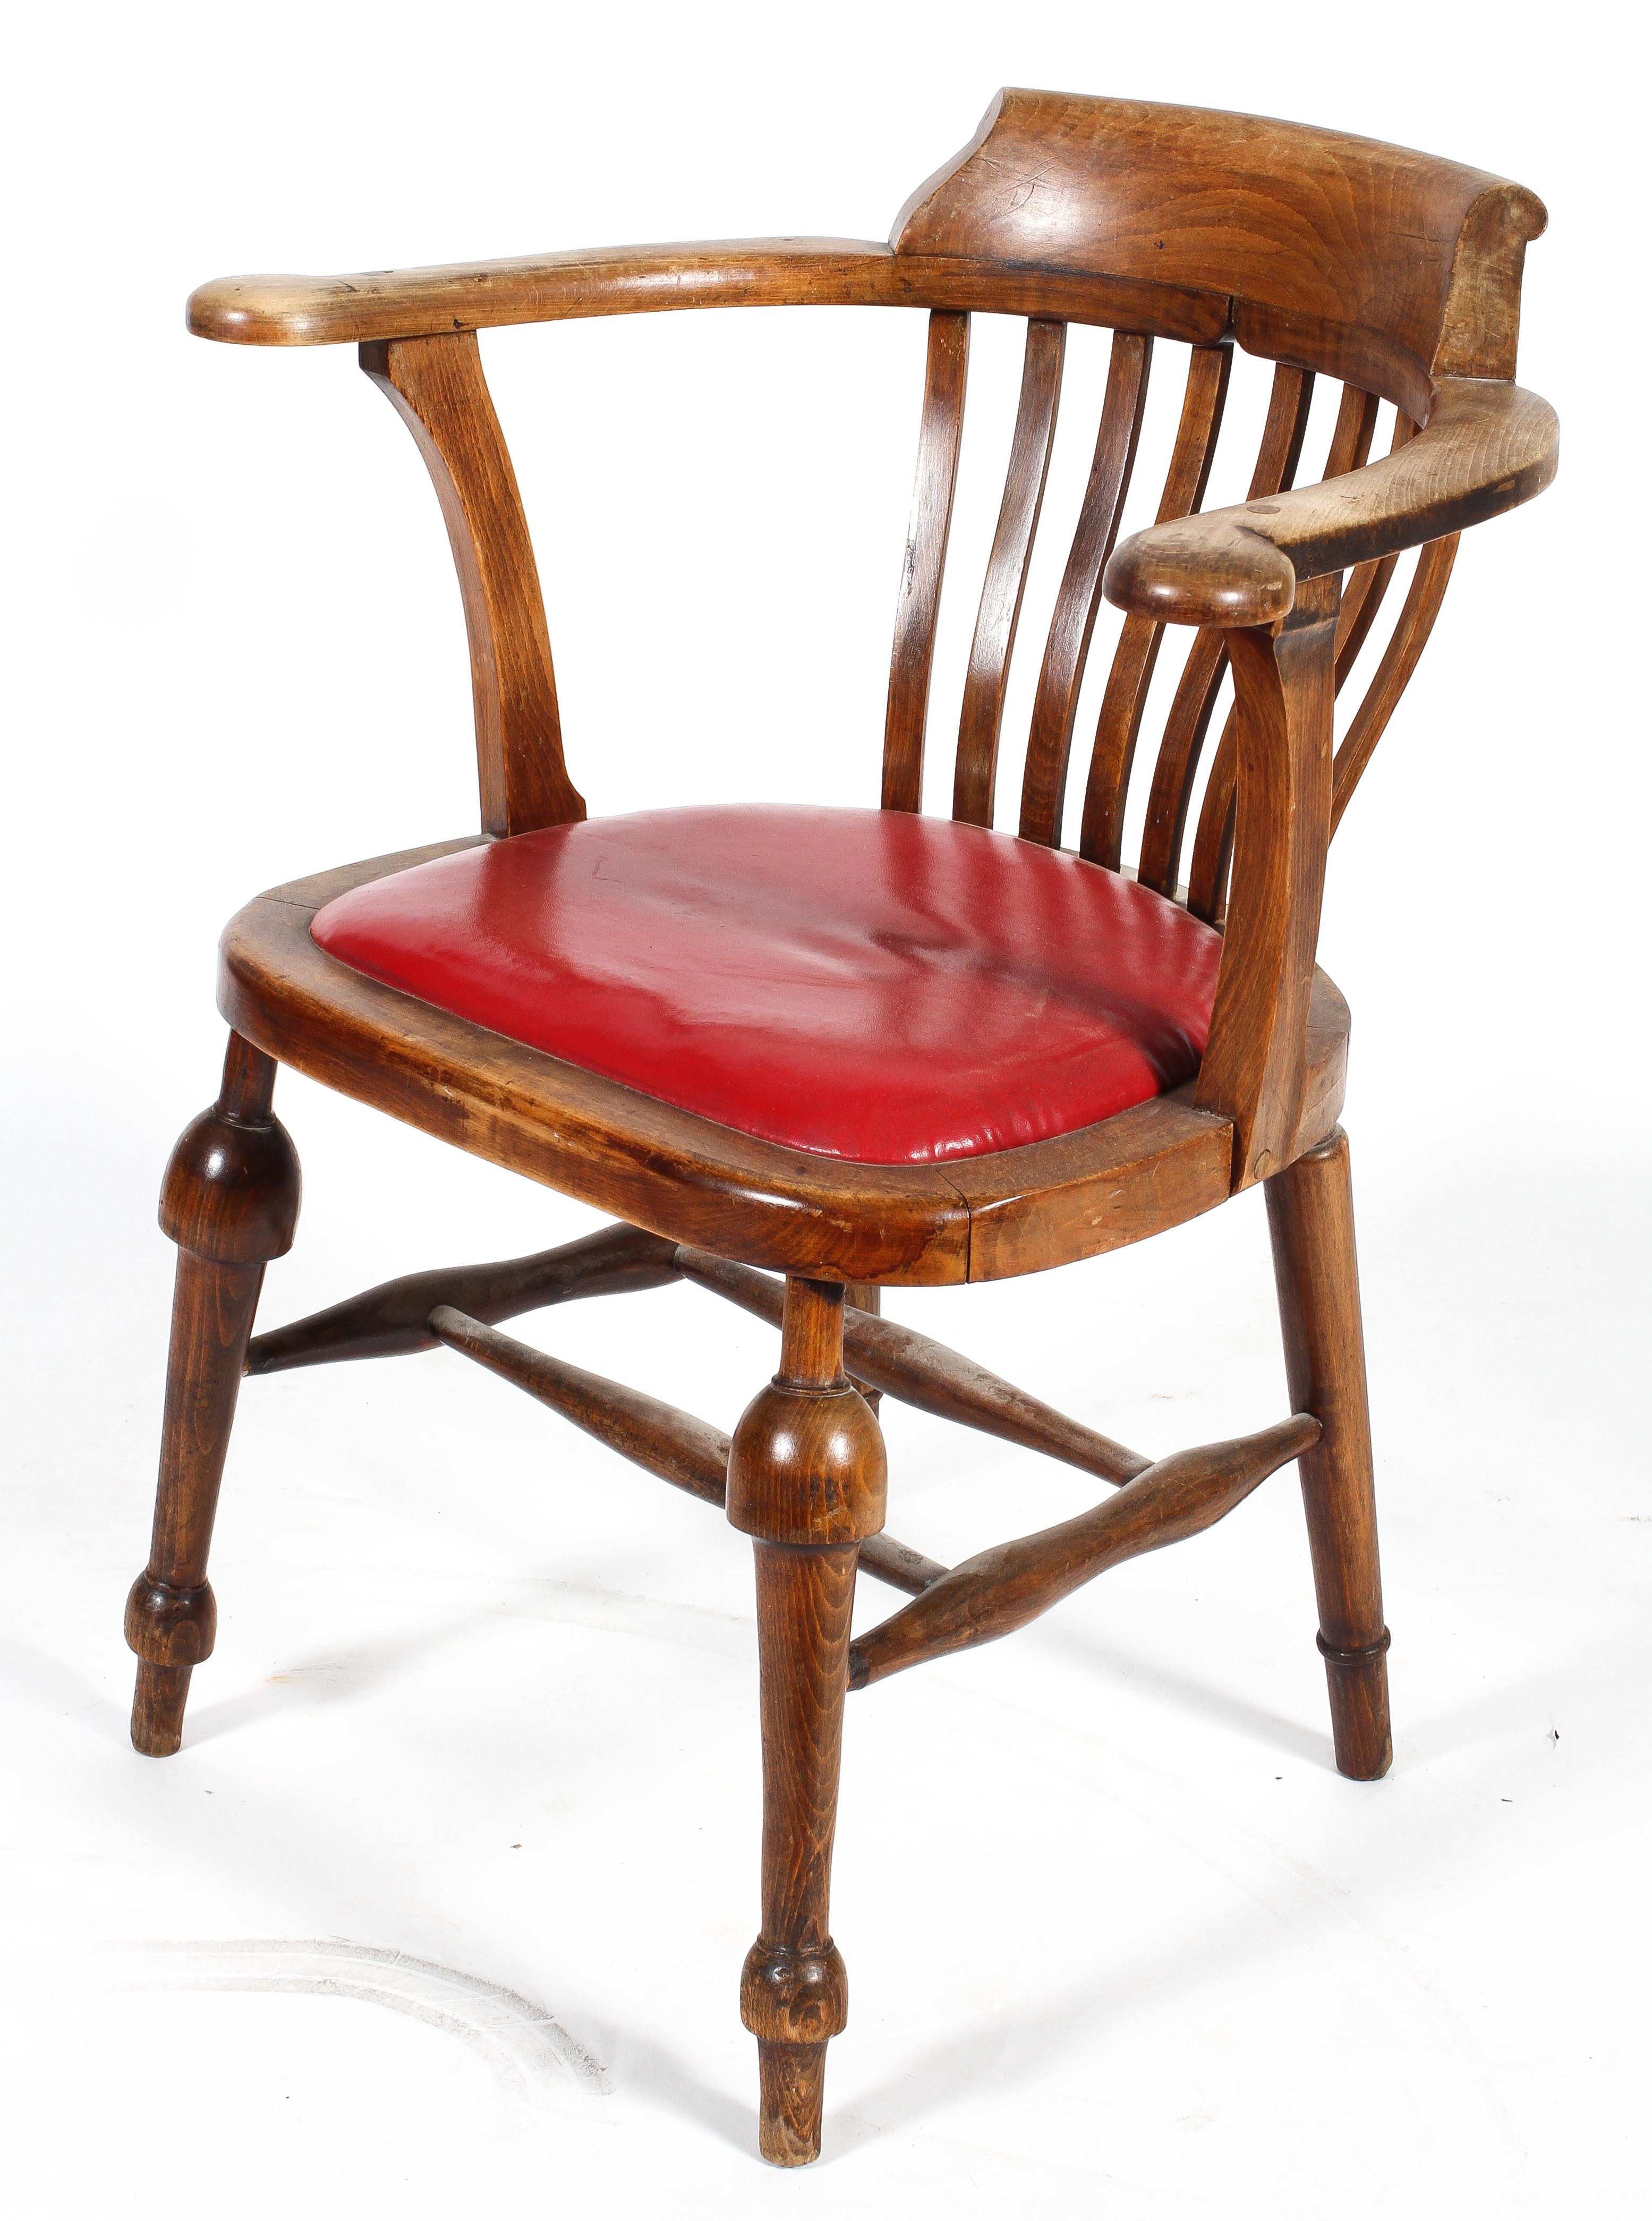 An Edwardian elm desk chair, with lathe back and padded seat,